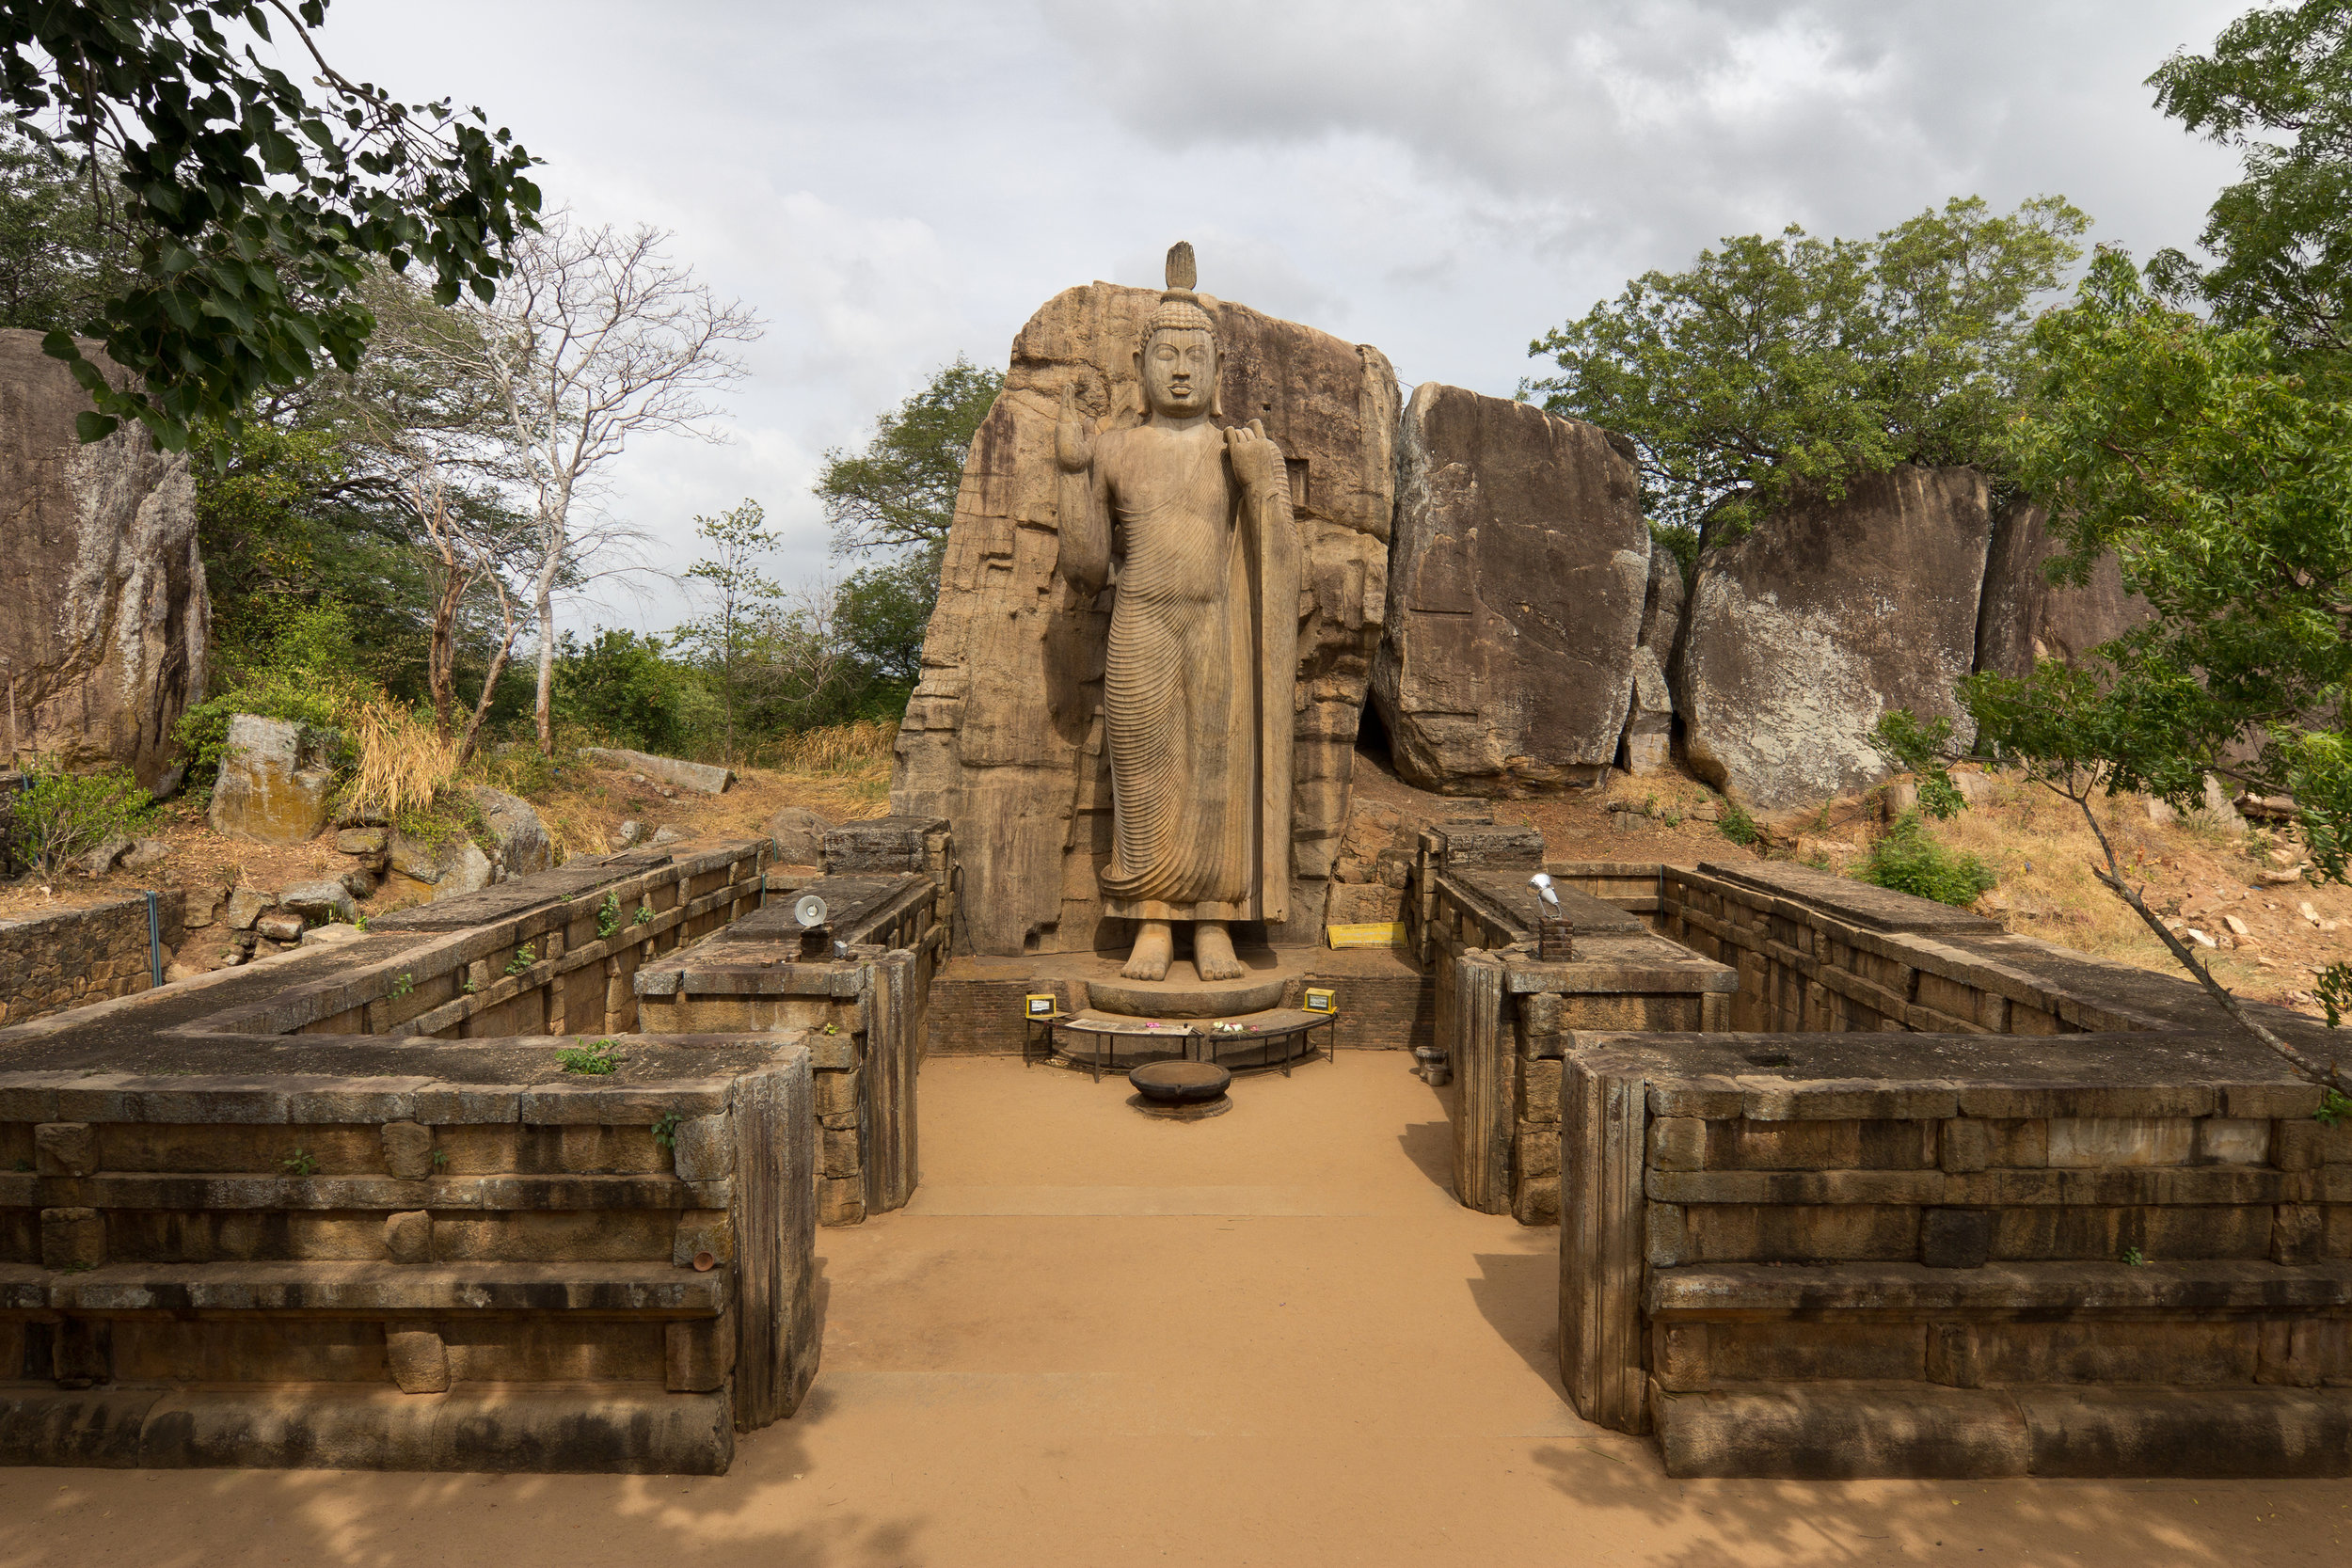 The Avukana Buddha, a fifth century Sri Lankan work. The island nation's serene beauty belies years of violence. Photograph by Carlos Delgado.